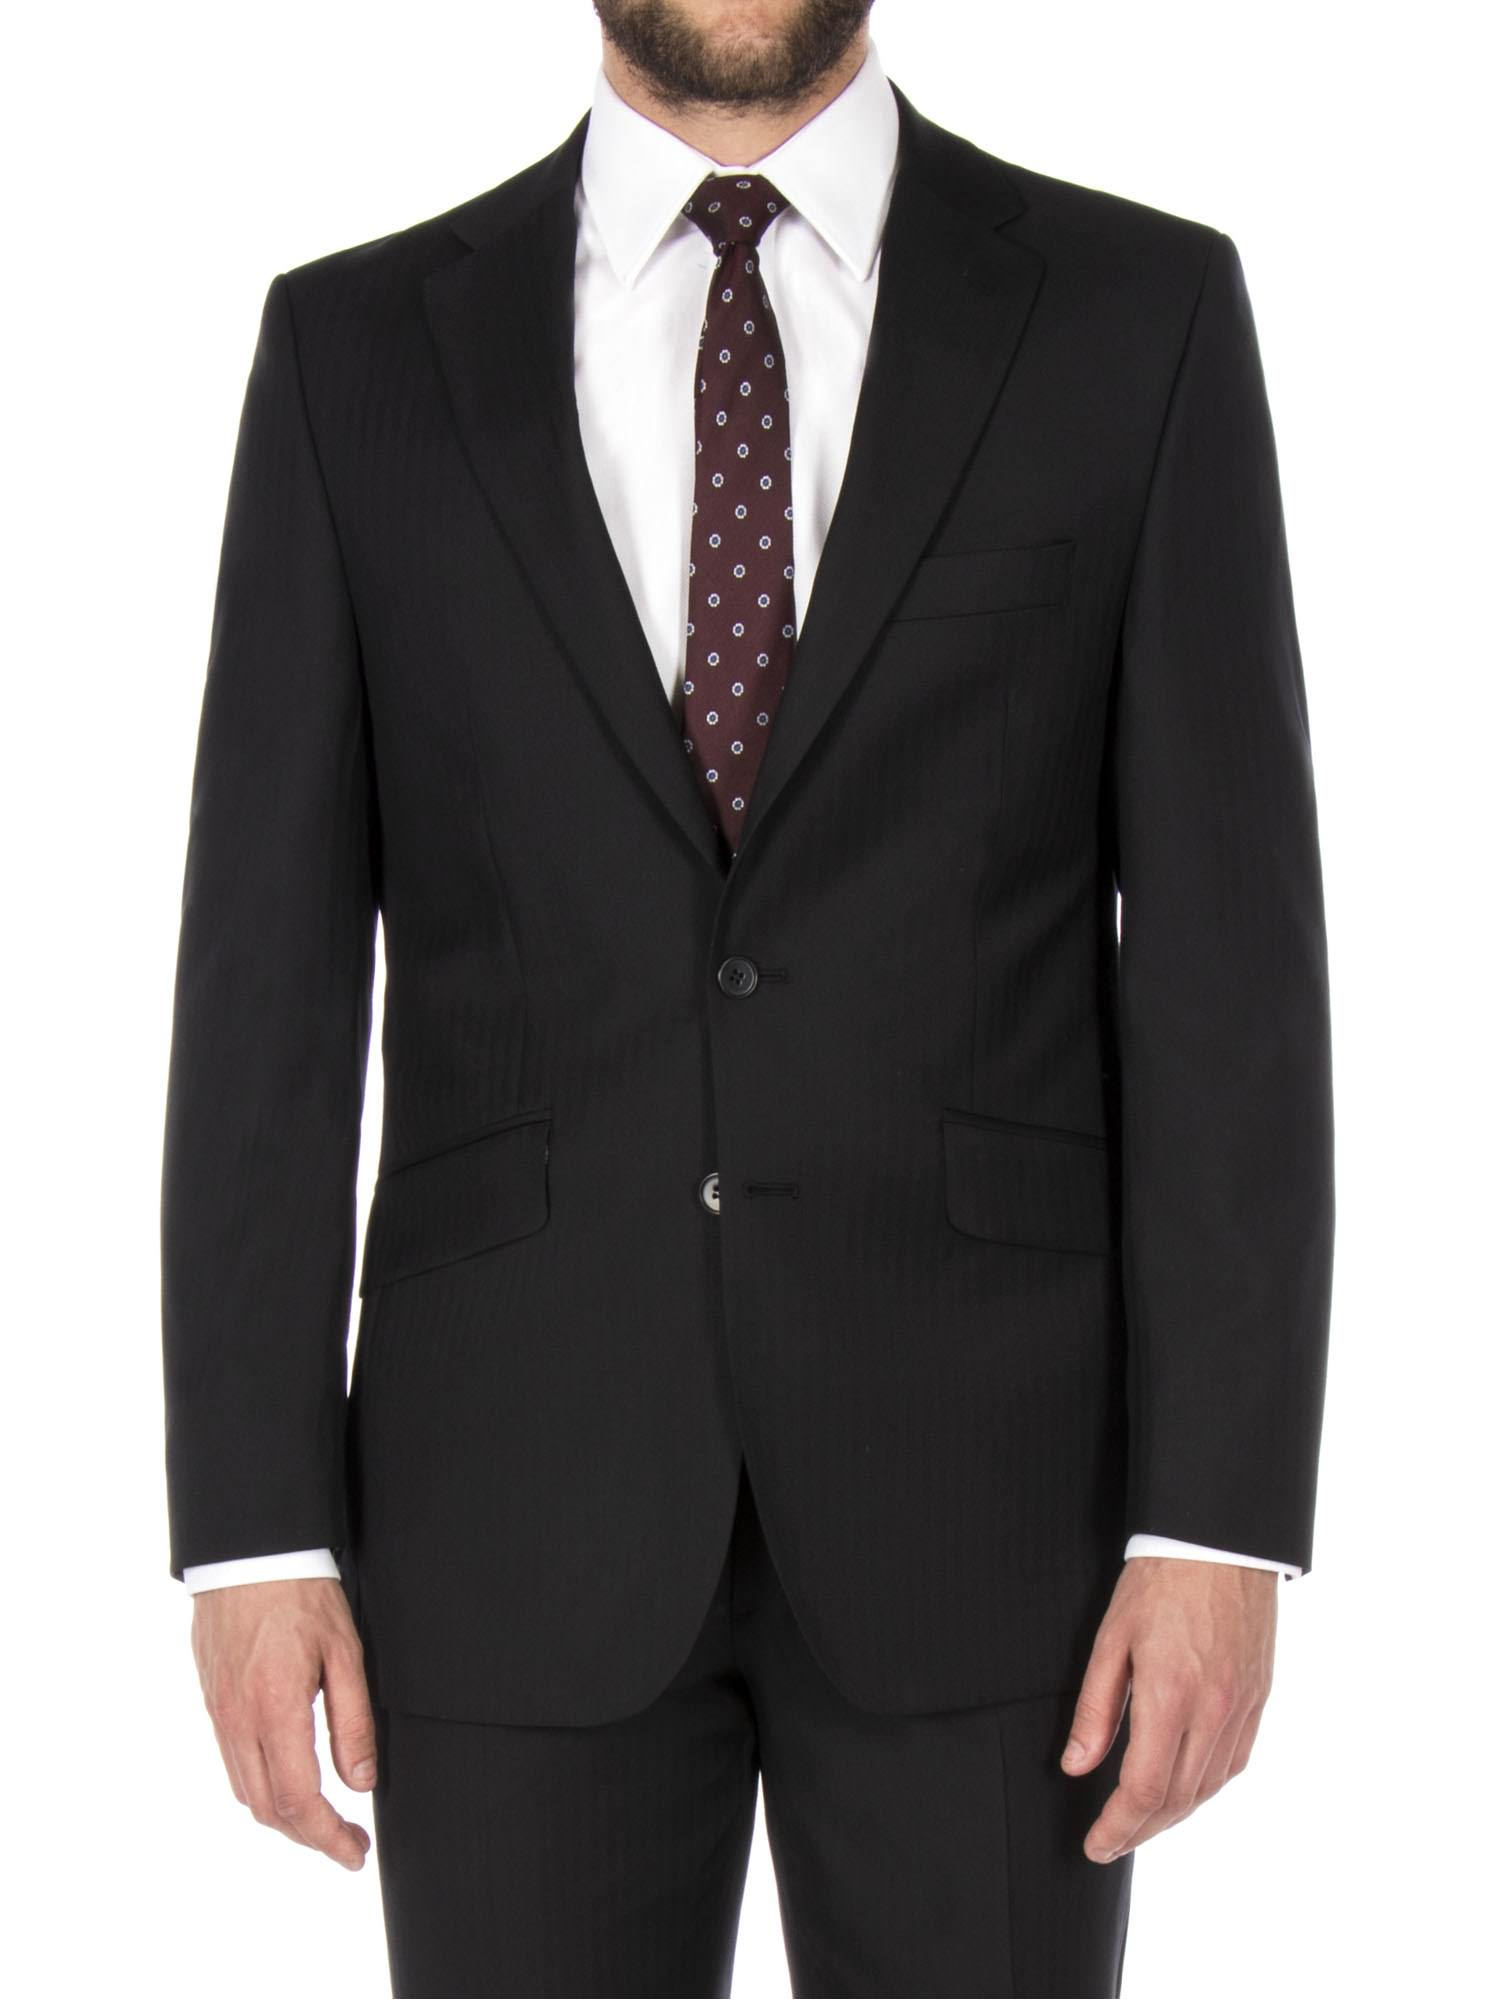 It is a picture of Gutsy The Black Label Suits